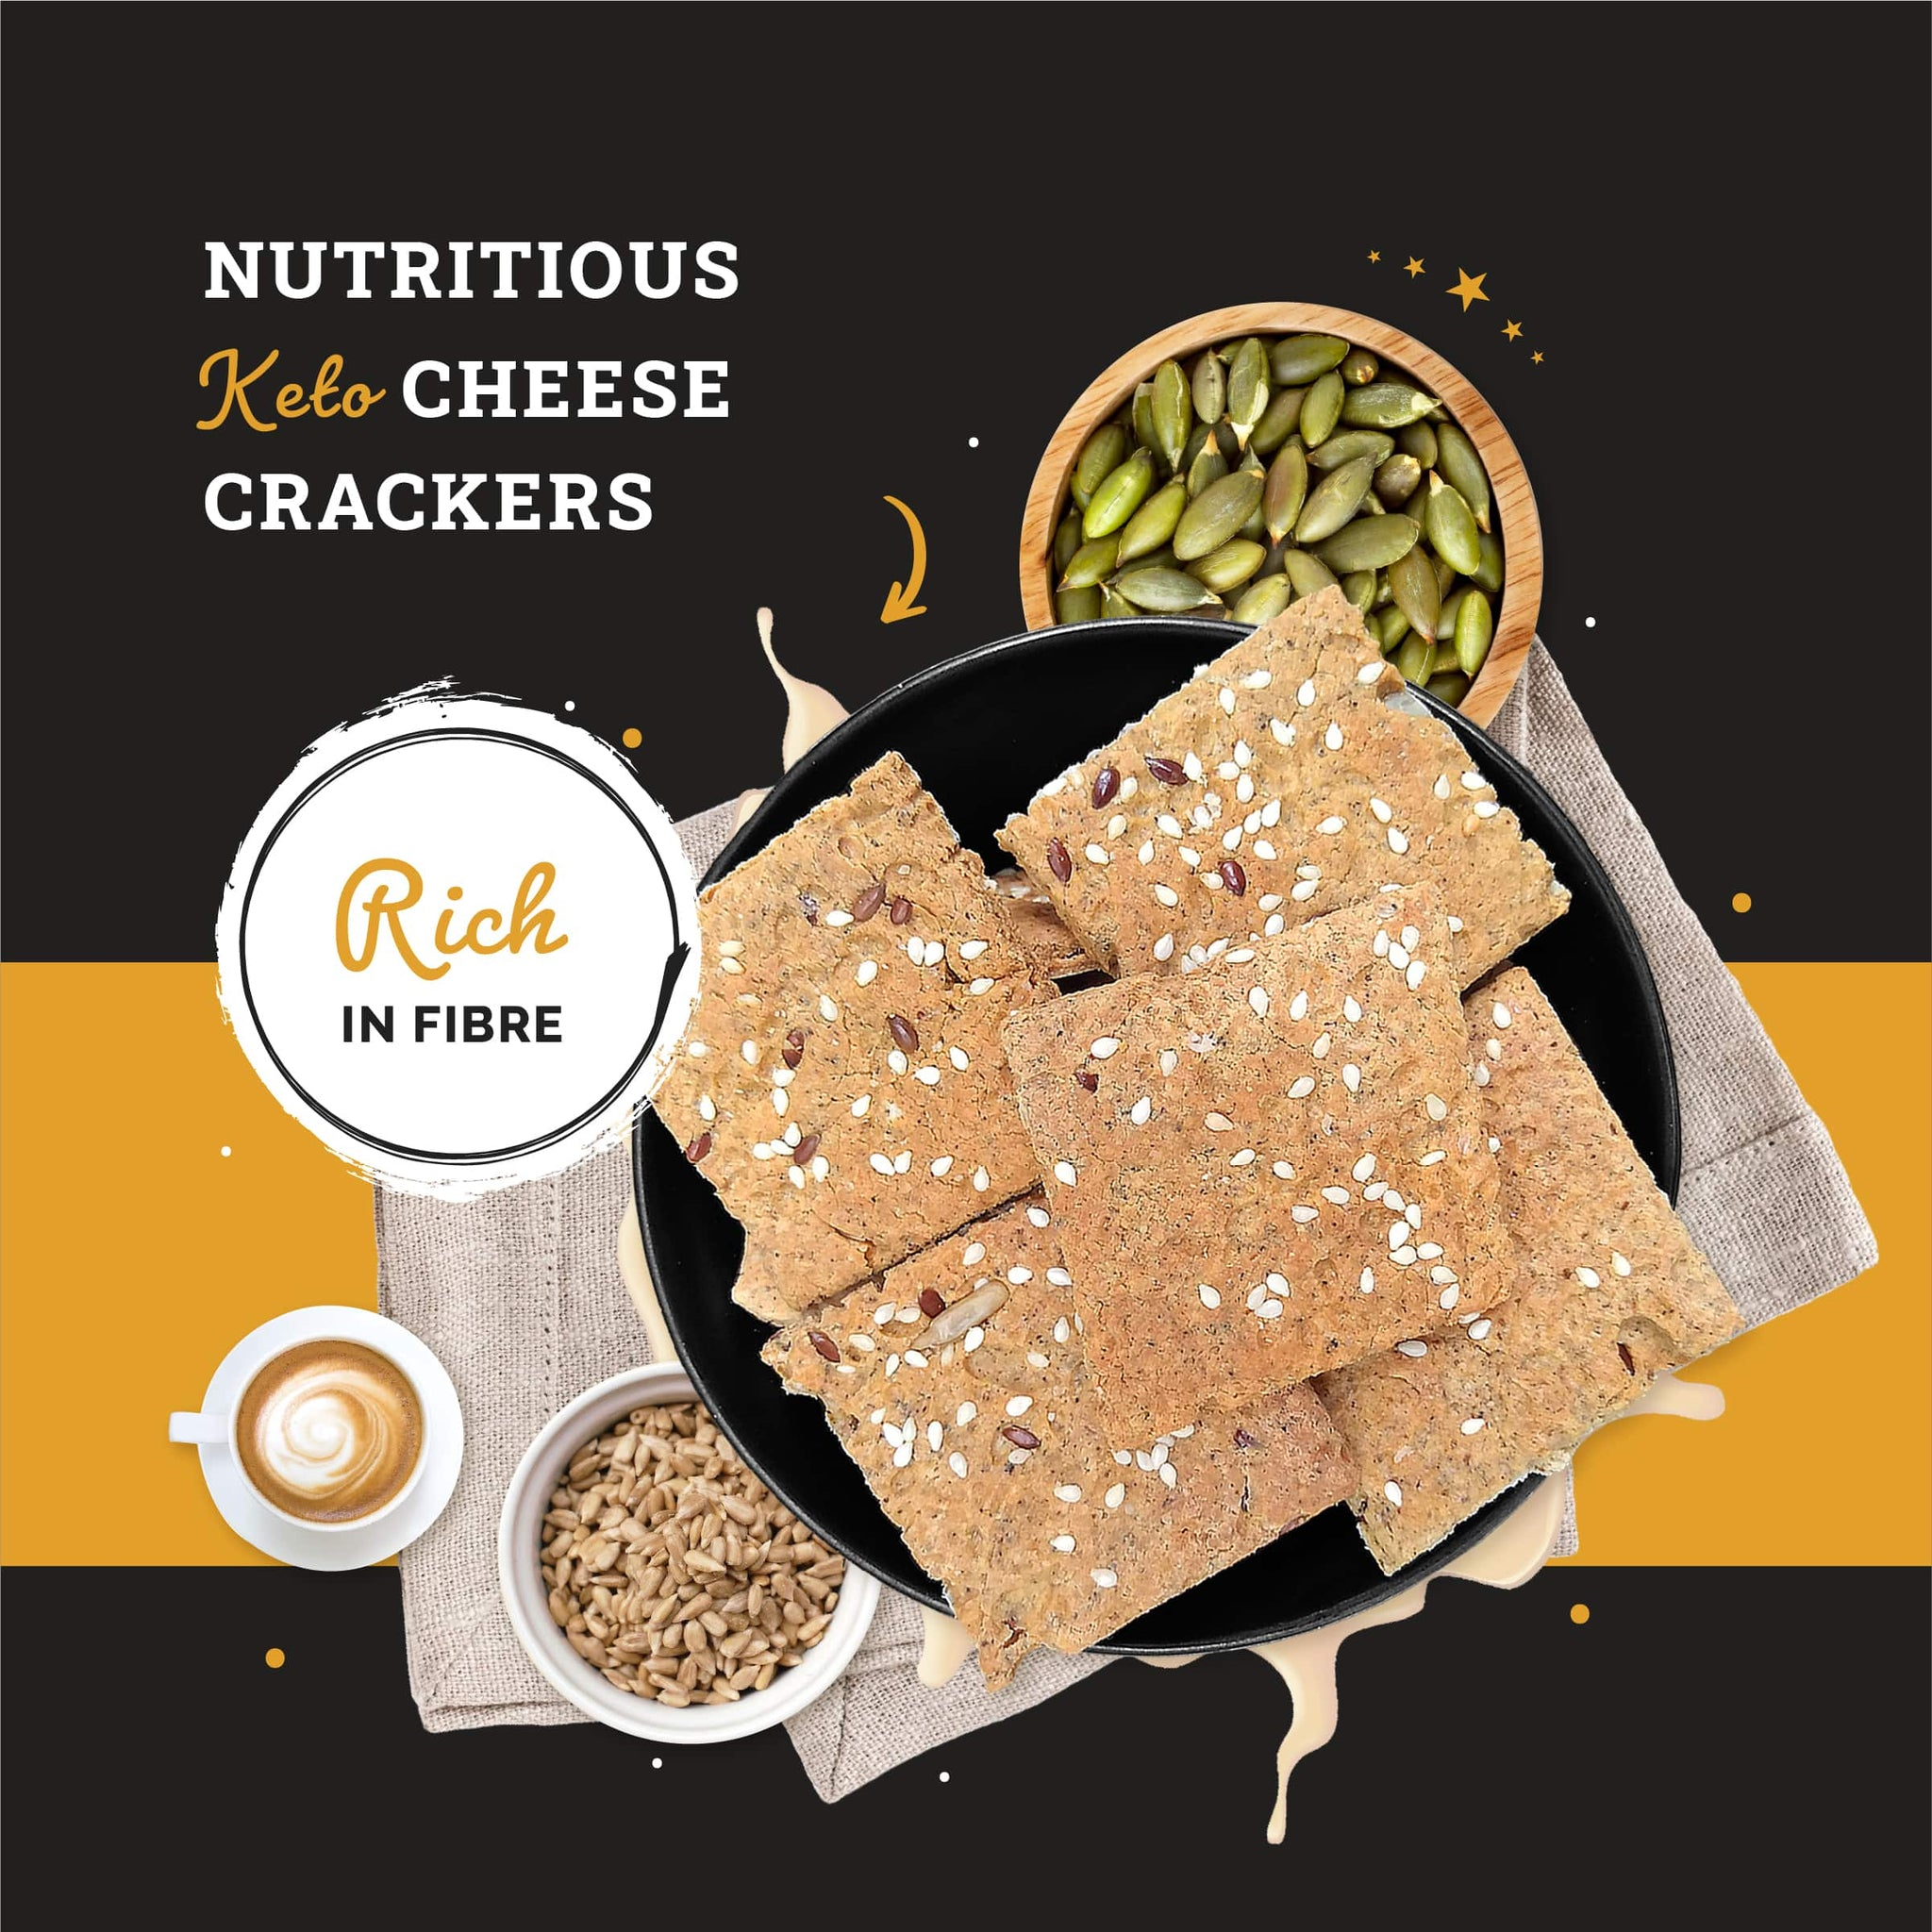 Ketofy - Keto Cheese Crackers | Ultra Low Carb